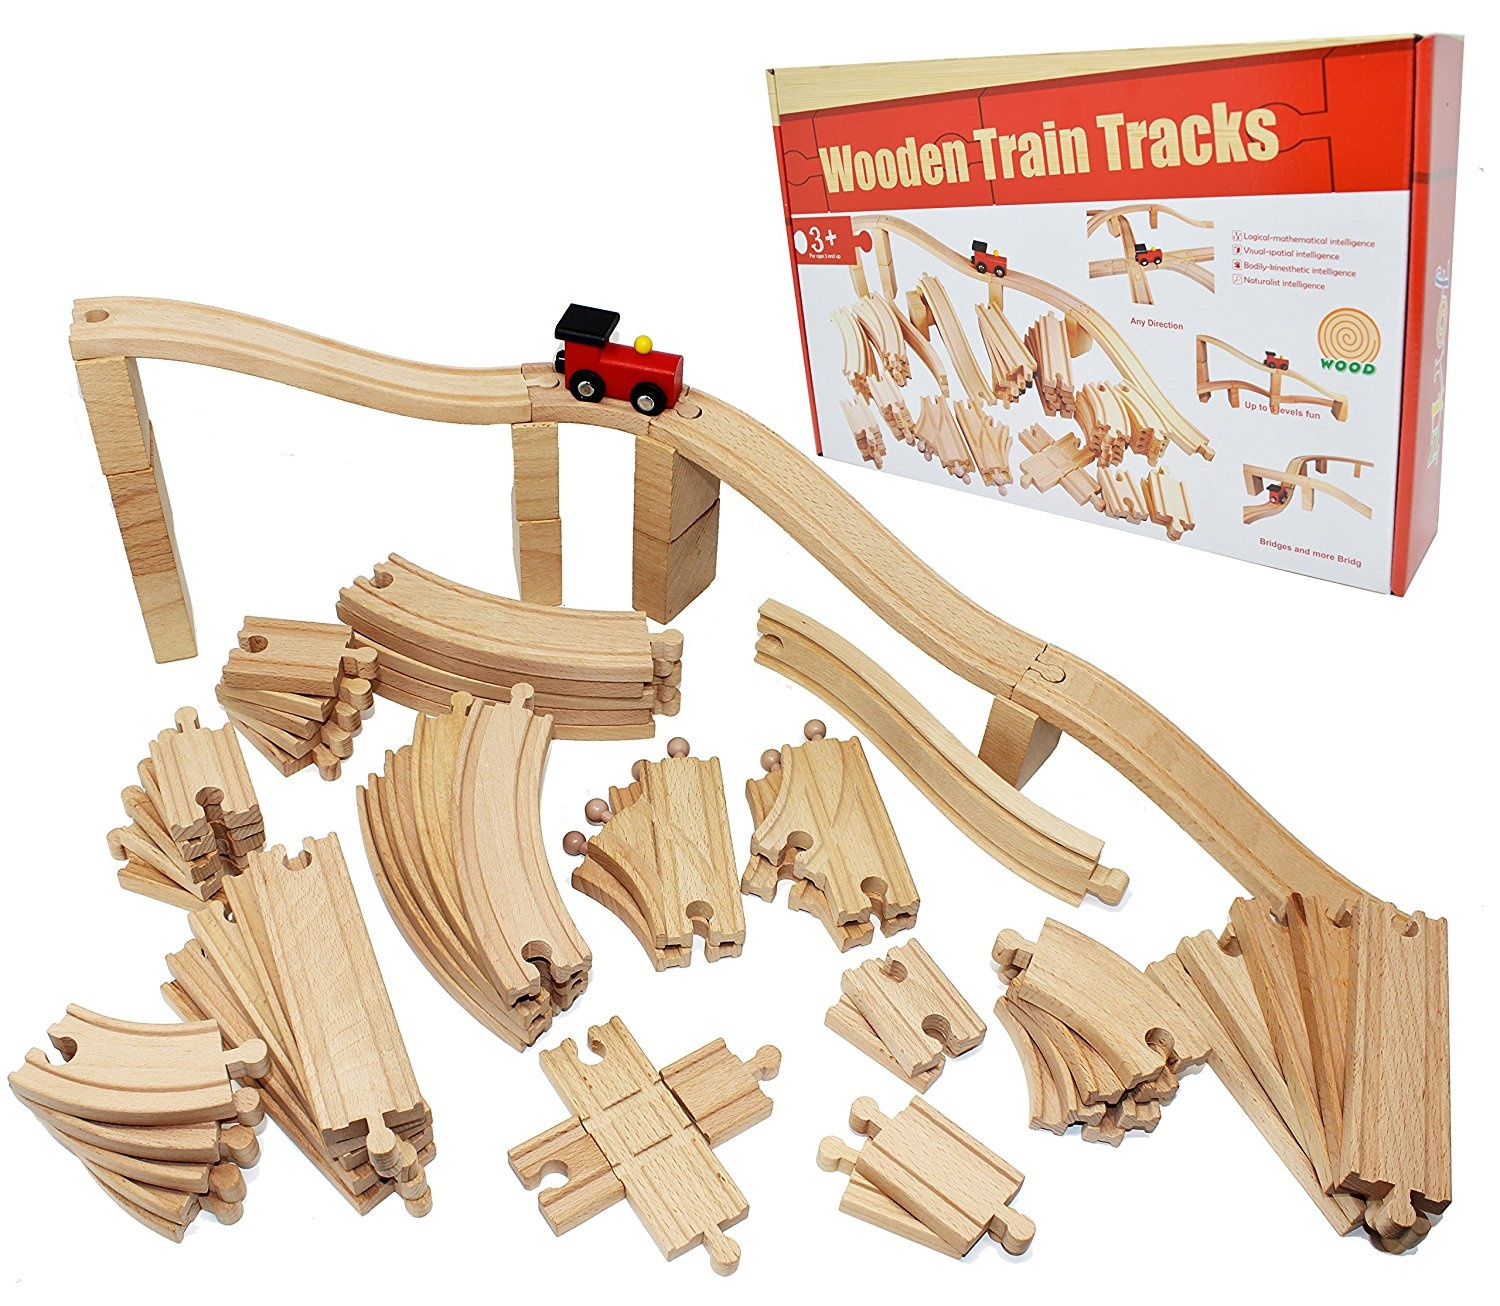 Joyin Toy 62 Pieces Wooden Train Track Expansion Set Compatible With All Major Brands Including Thomas